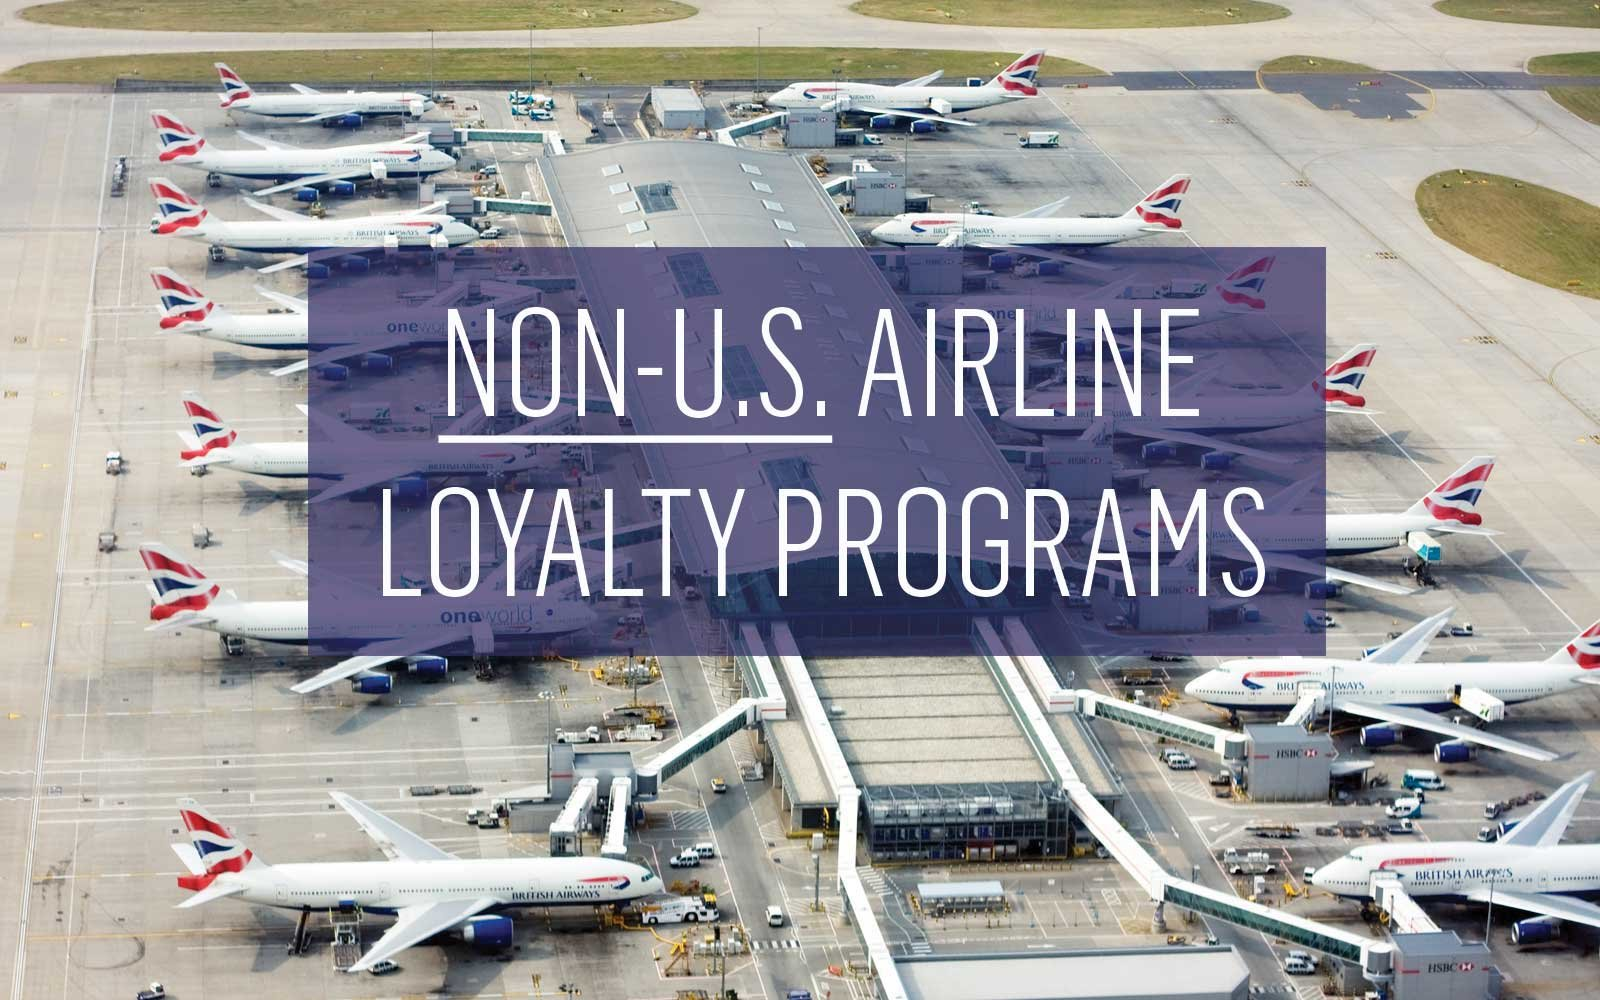 The Best Non-U.S. Airline Loyalty Programs